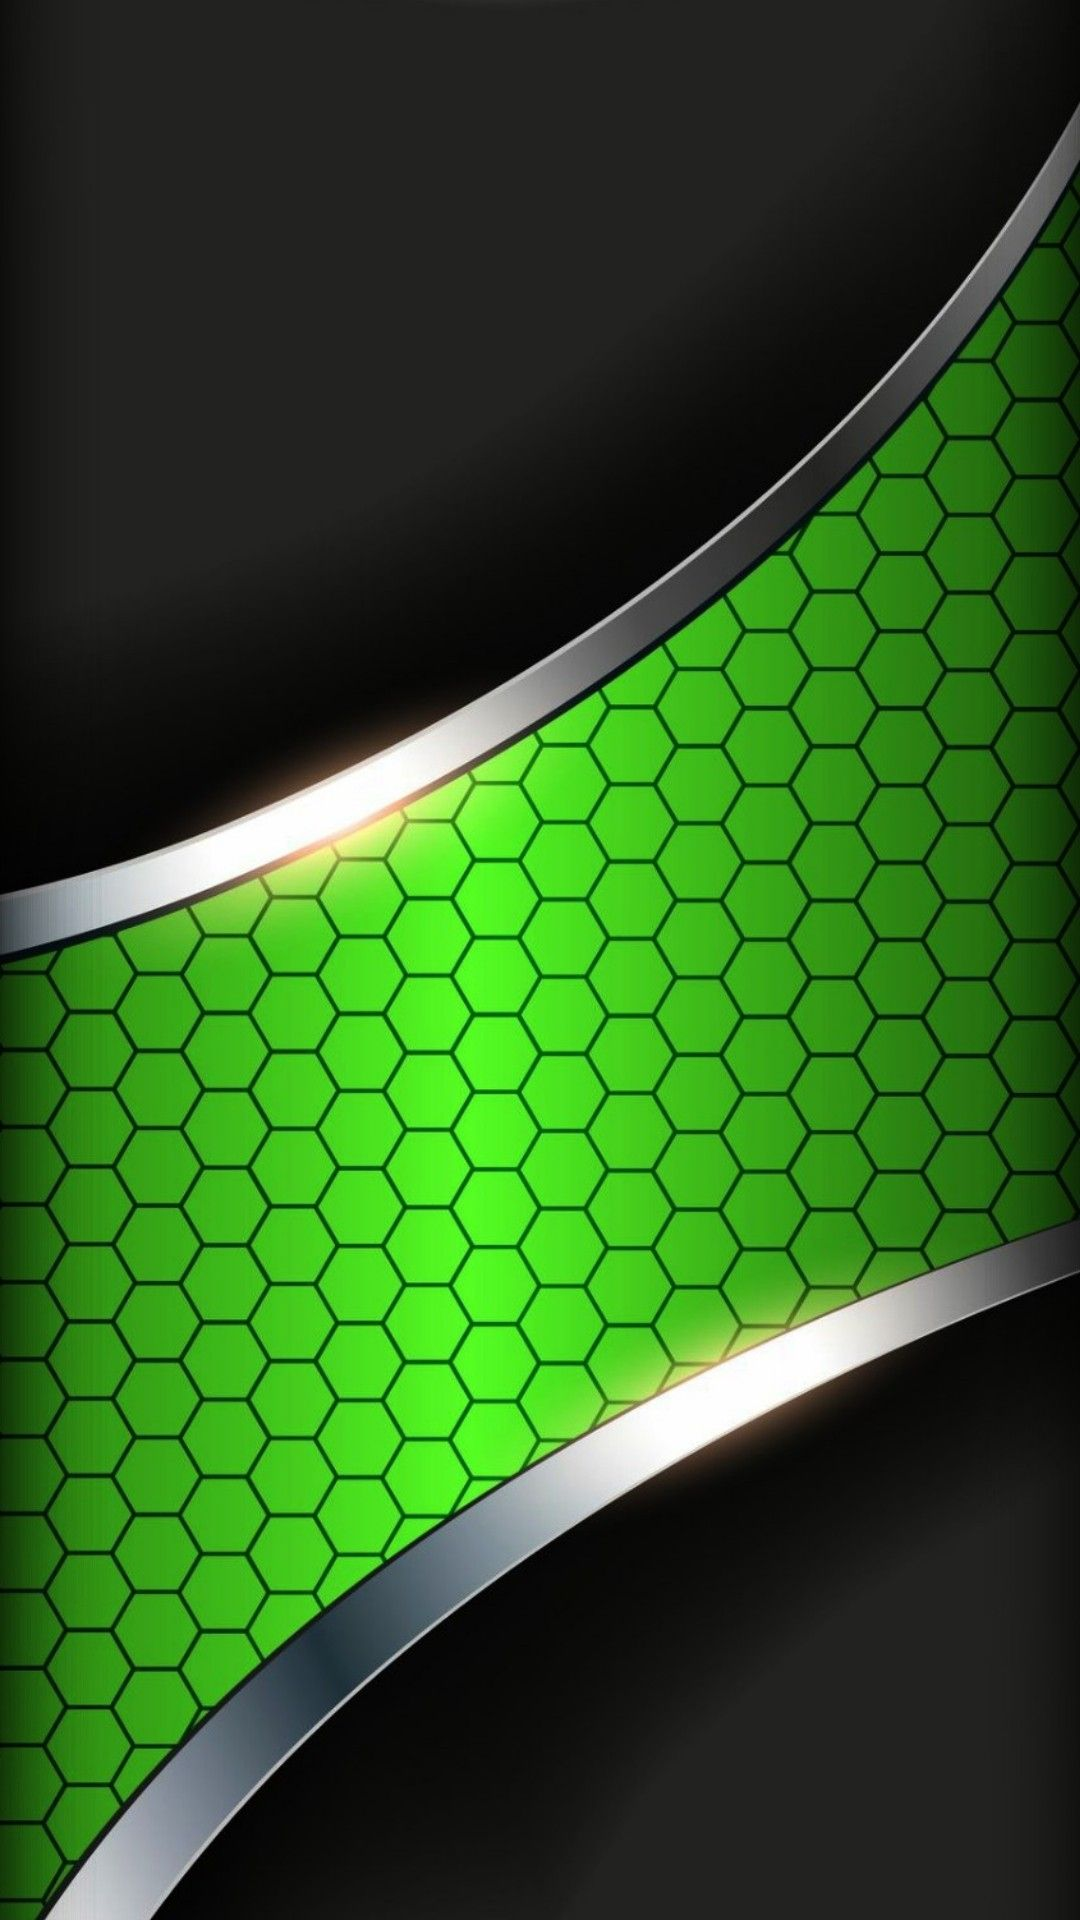 Wired Green Android Wallpaper I Use On My Samsung Luna Older 2016